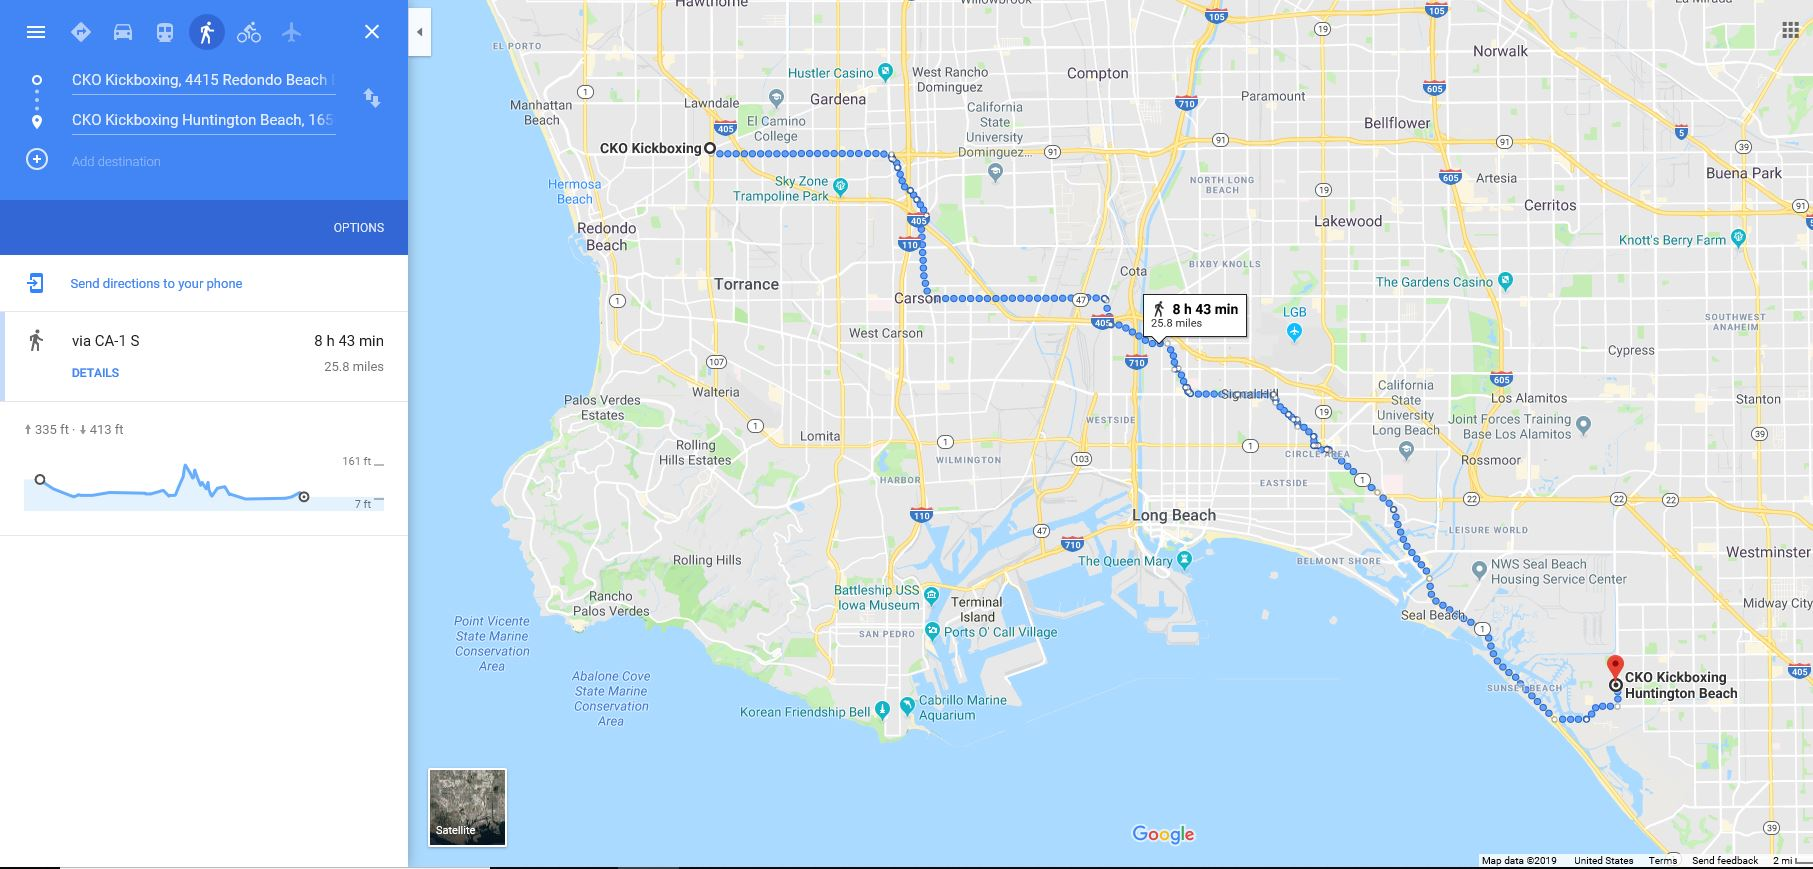 26 Mile Run & Virtual Run Day - checkpoints830am cko south bay kickboxing class (gloves required)10am CKO South Bay -run4pm CKO Huntington Beach (interview)all day Virtual run-1 mile to 26 miles (see bottom of page for directions)